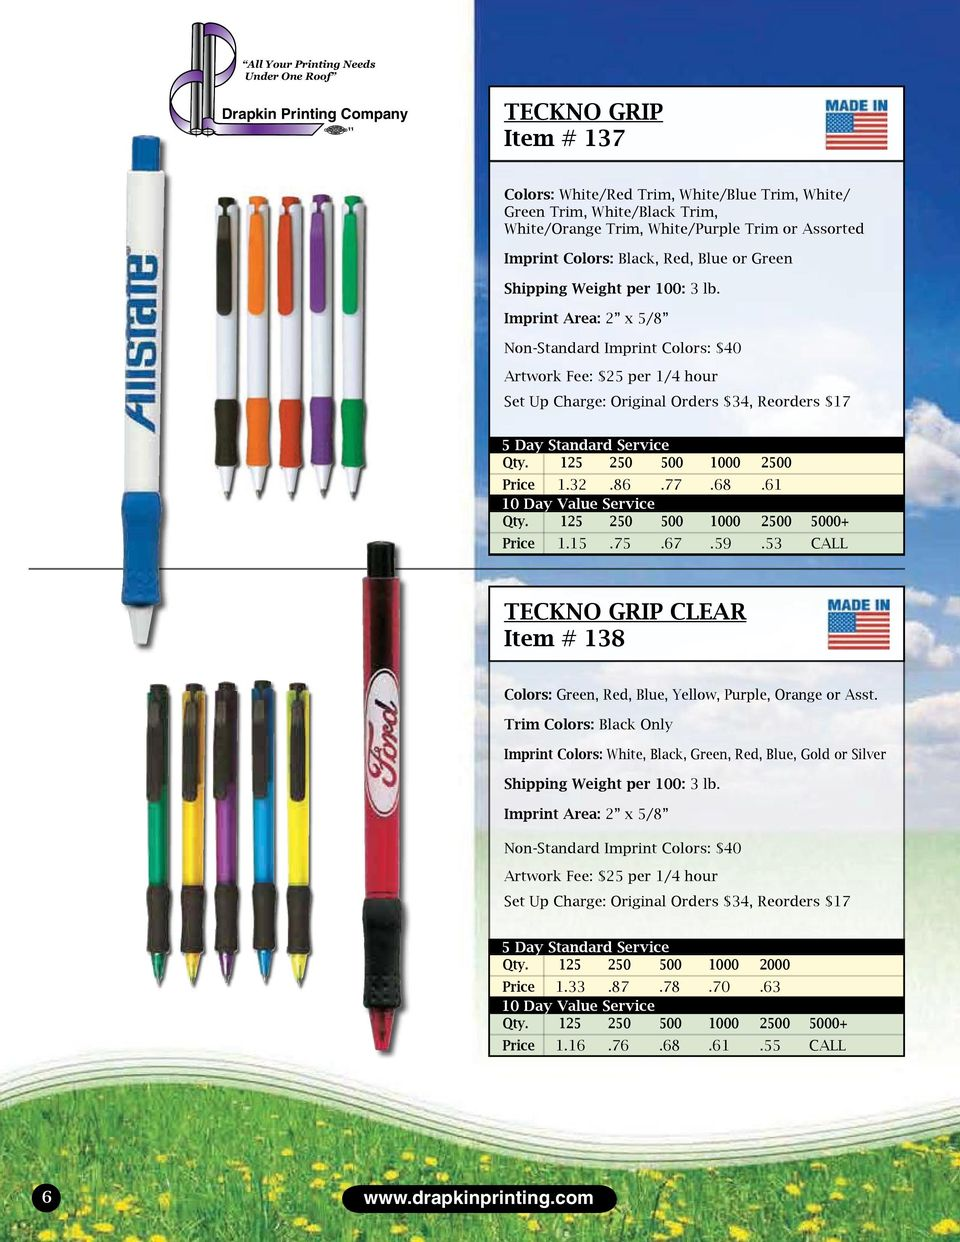 53 CALL TECKNO GRIP CLEAR Item # 138 Colors: Green, Red, Blue, Yellow, Purple, Orange or Asst.